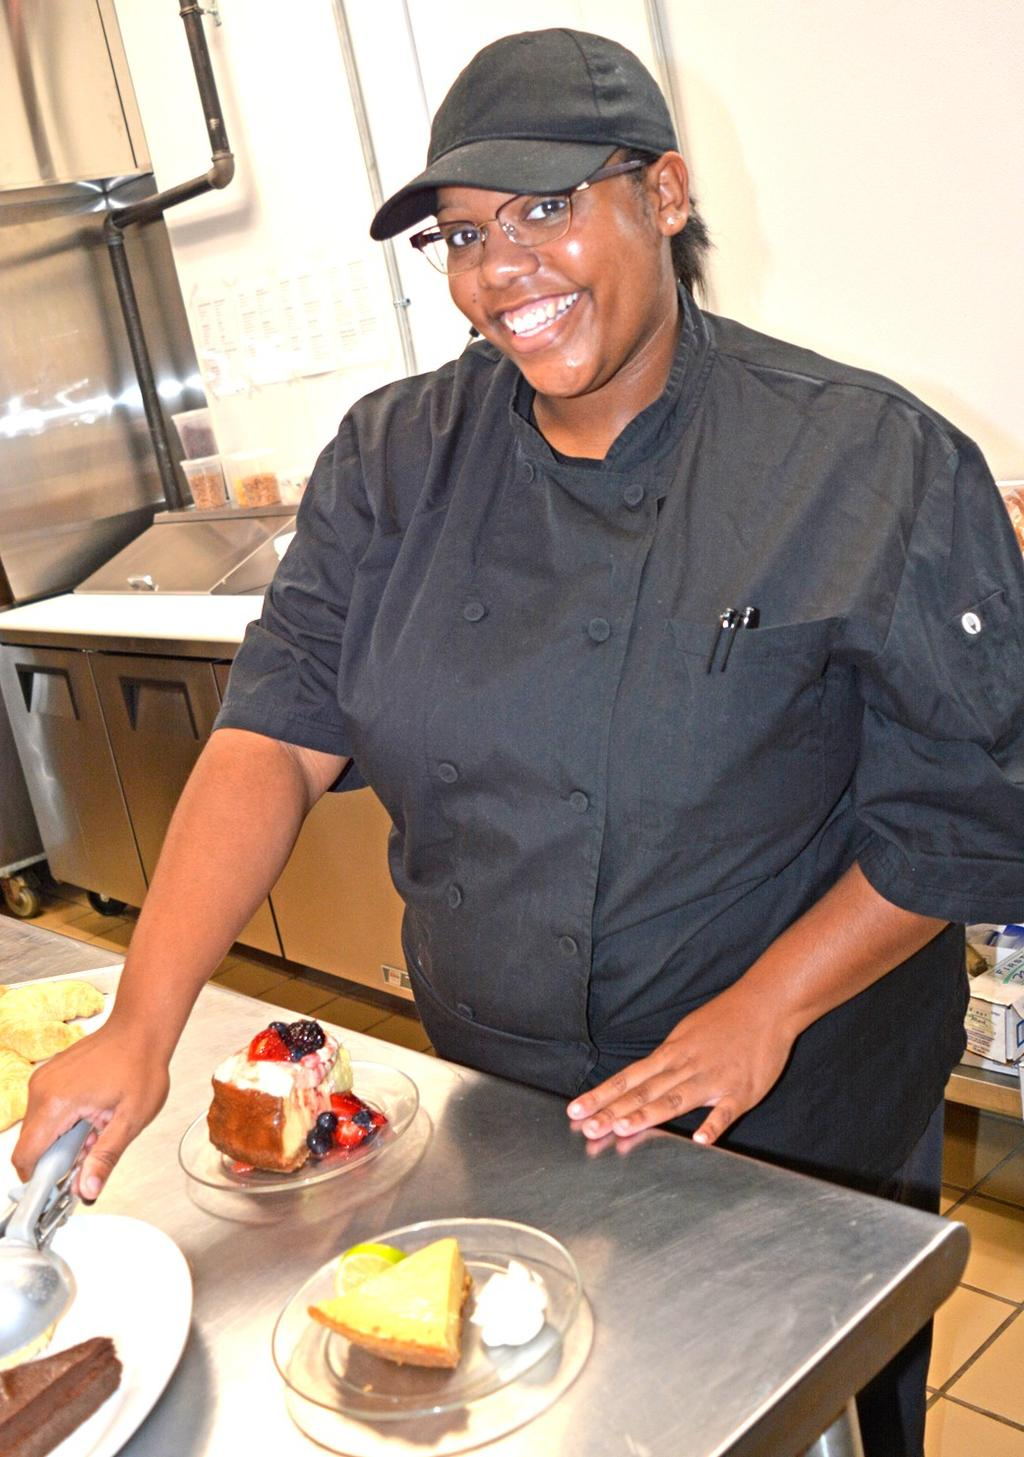 Meet Our Lake Pastry Chef Yep, We Have One! By Melissa Davis Jonnay Grooms technically started preparing for her career as a pastry chef before she could even read a recipe.